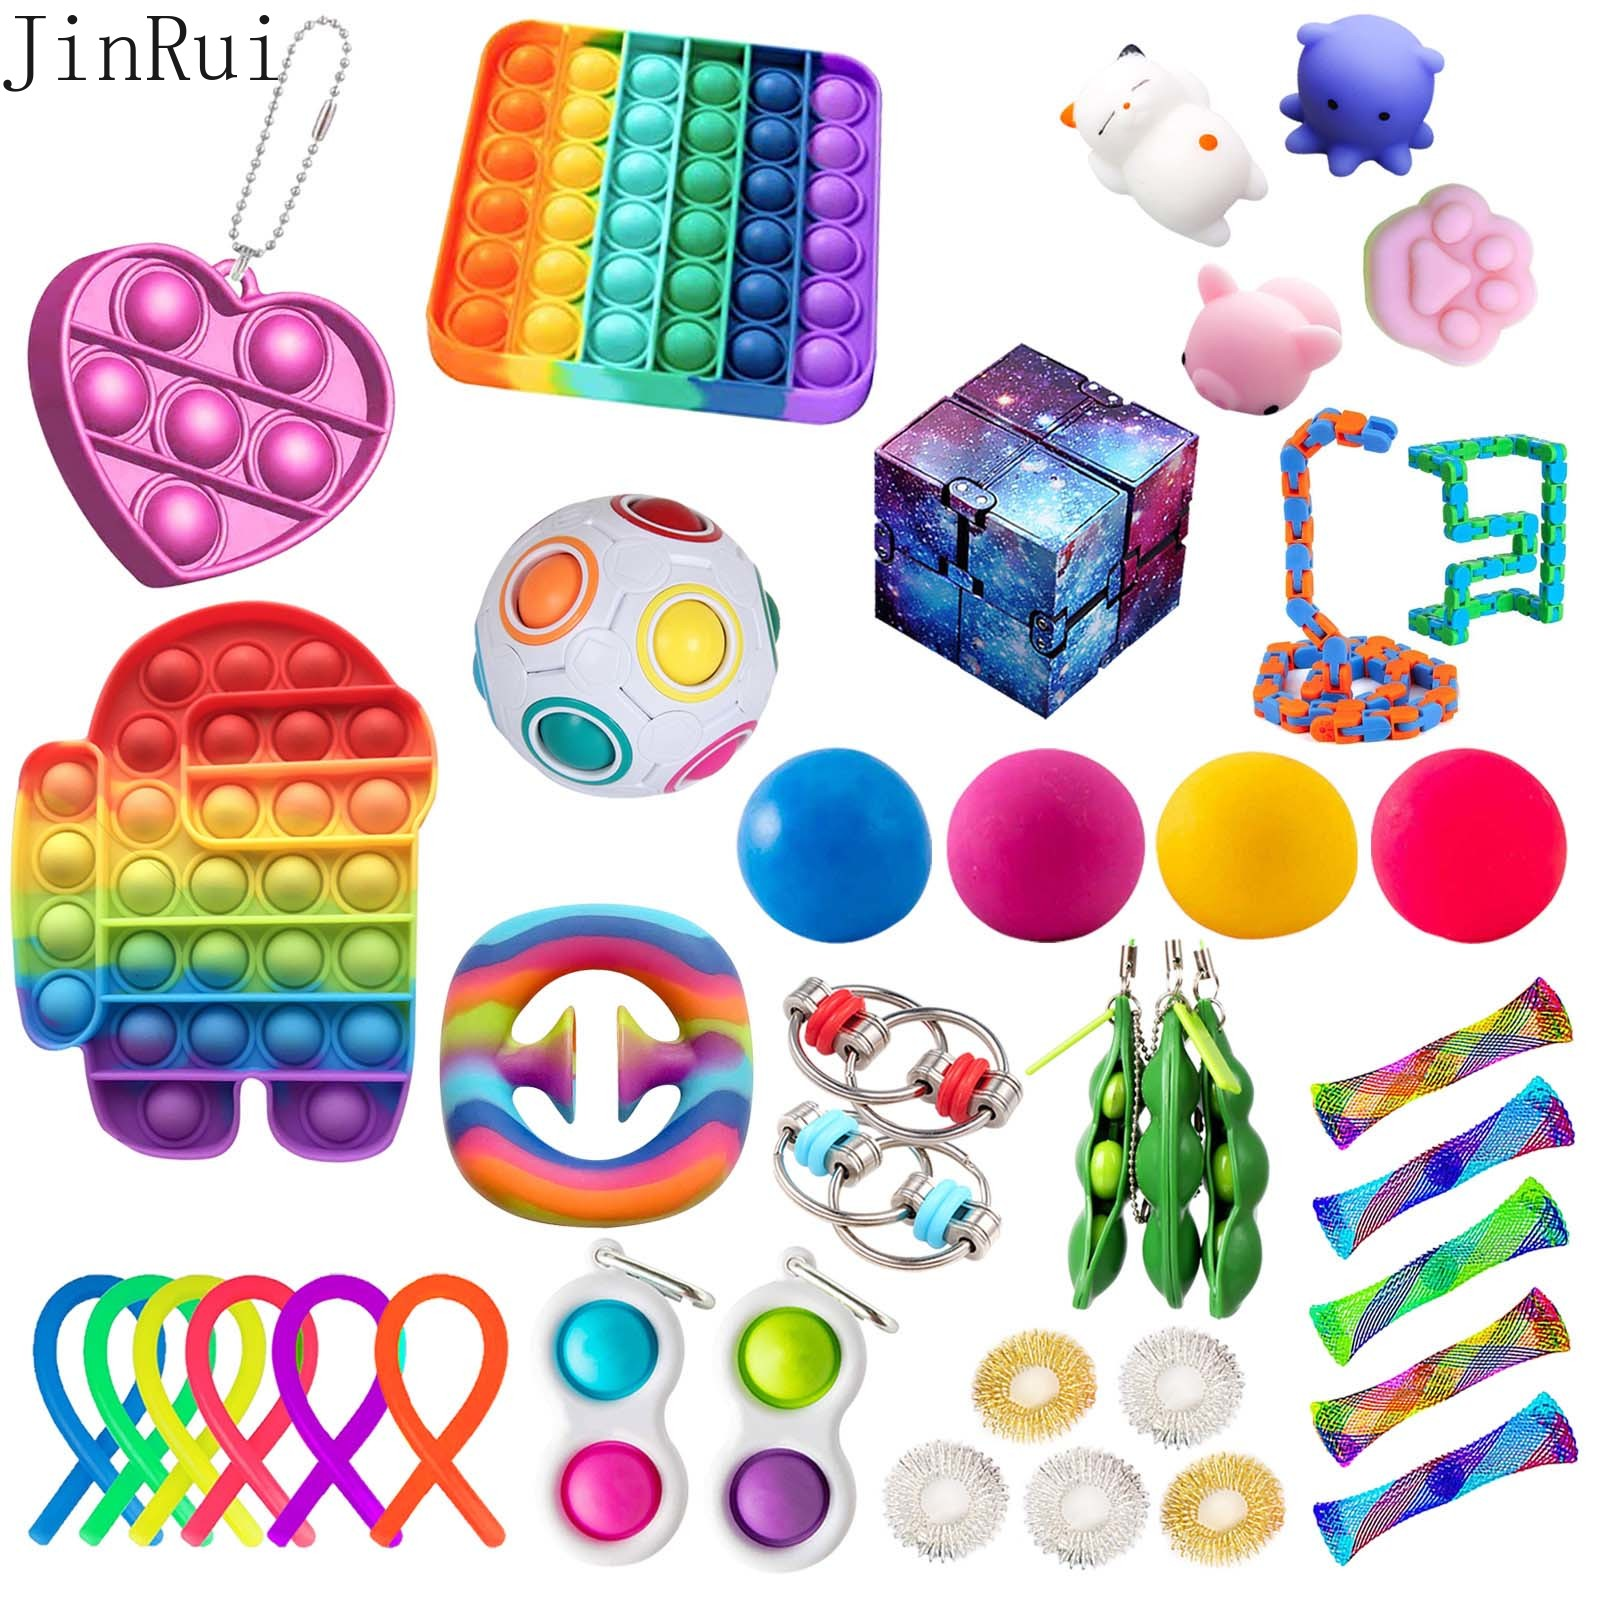 【ready stock】18-38 Pack Fidget Toys Set Sensory Tools Bundle Stress Relief Hand Kids Adults Toy